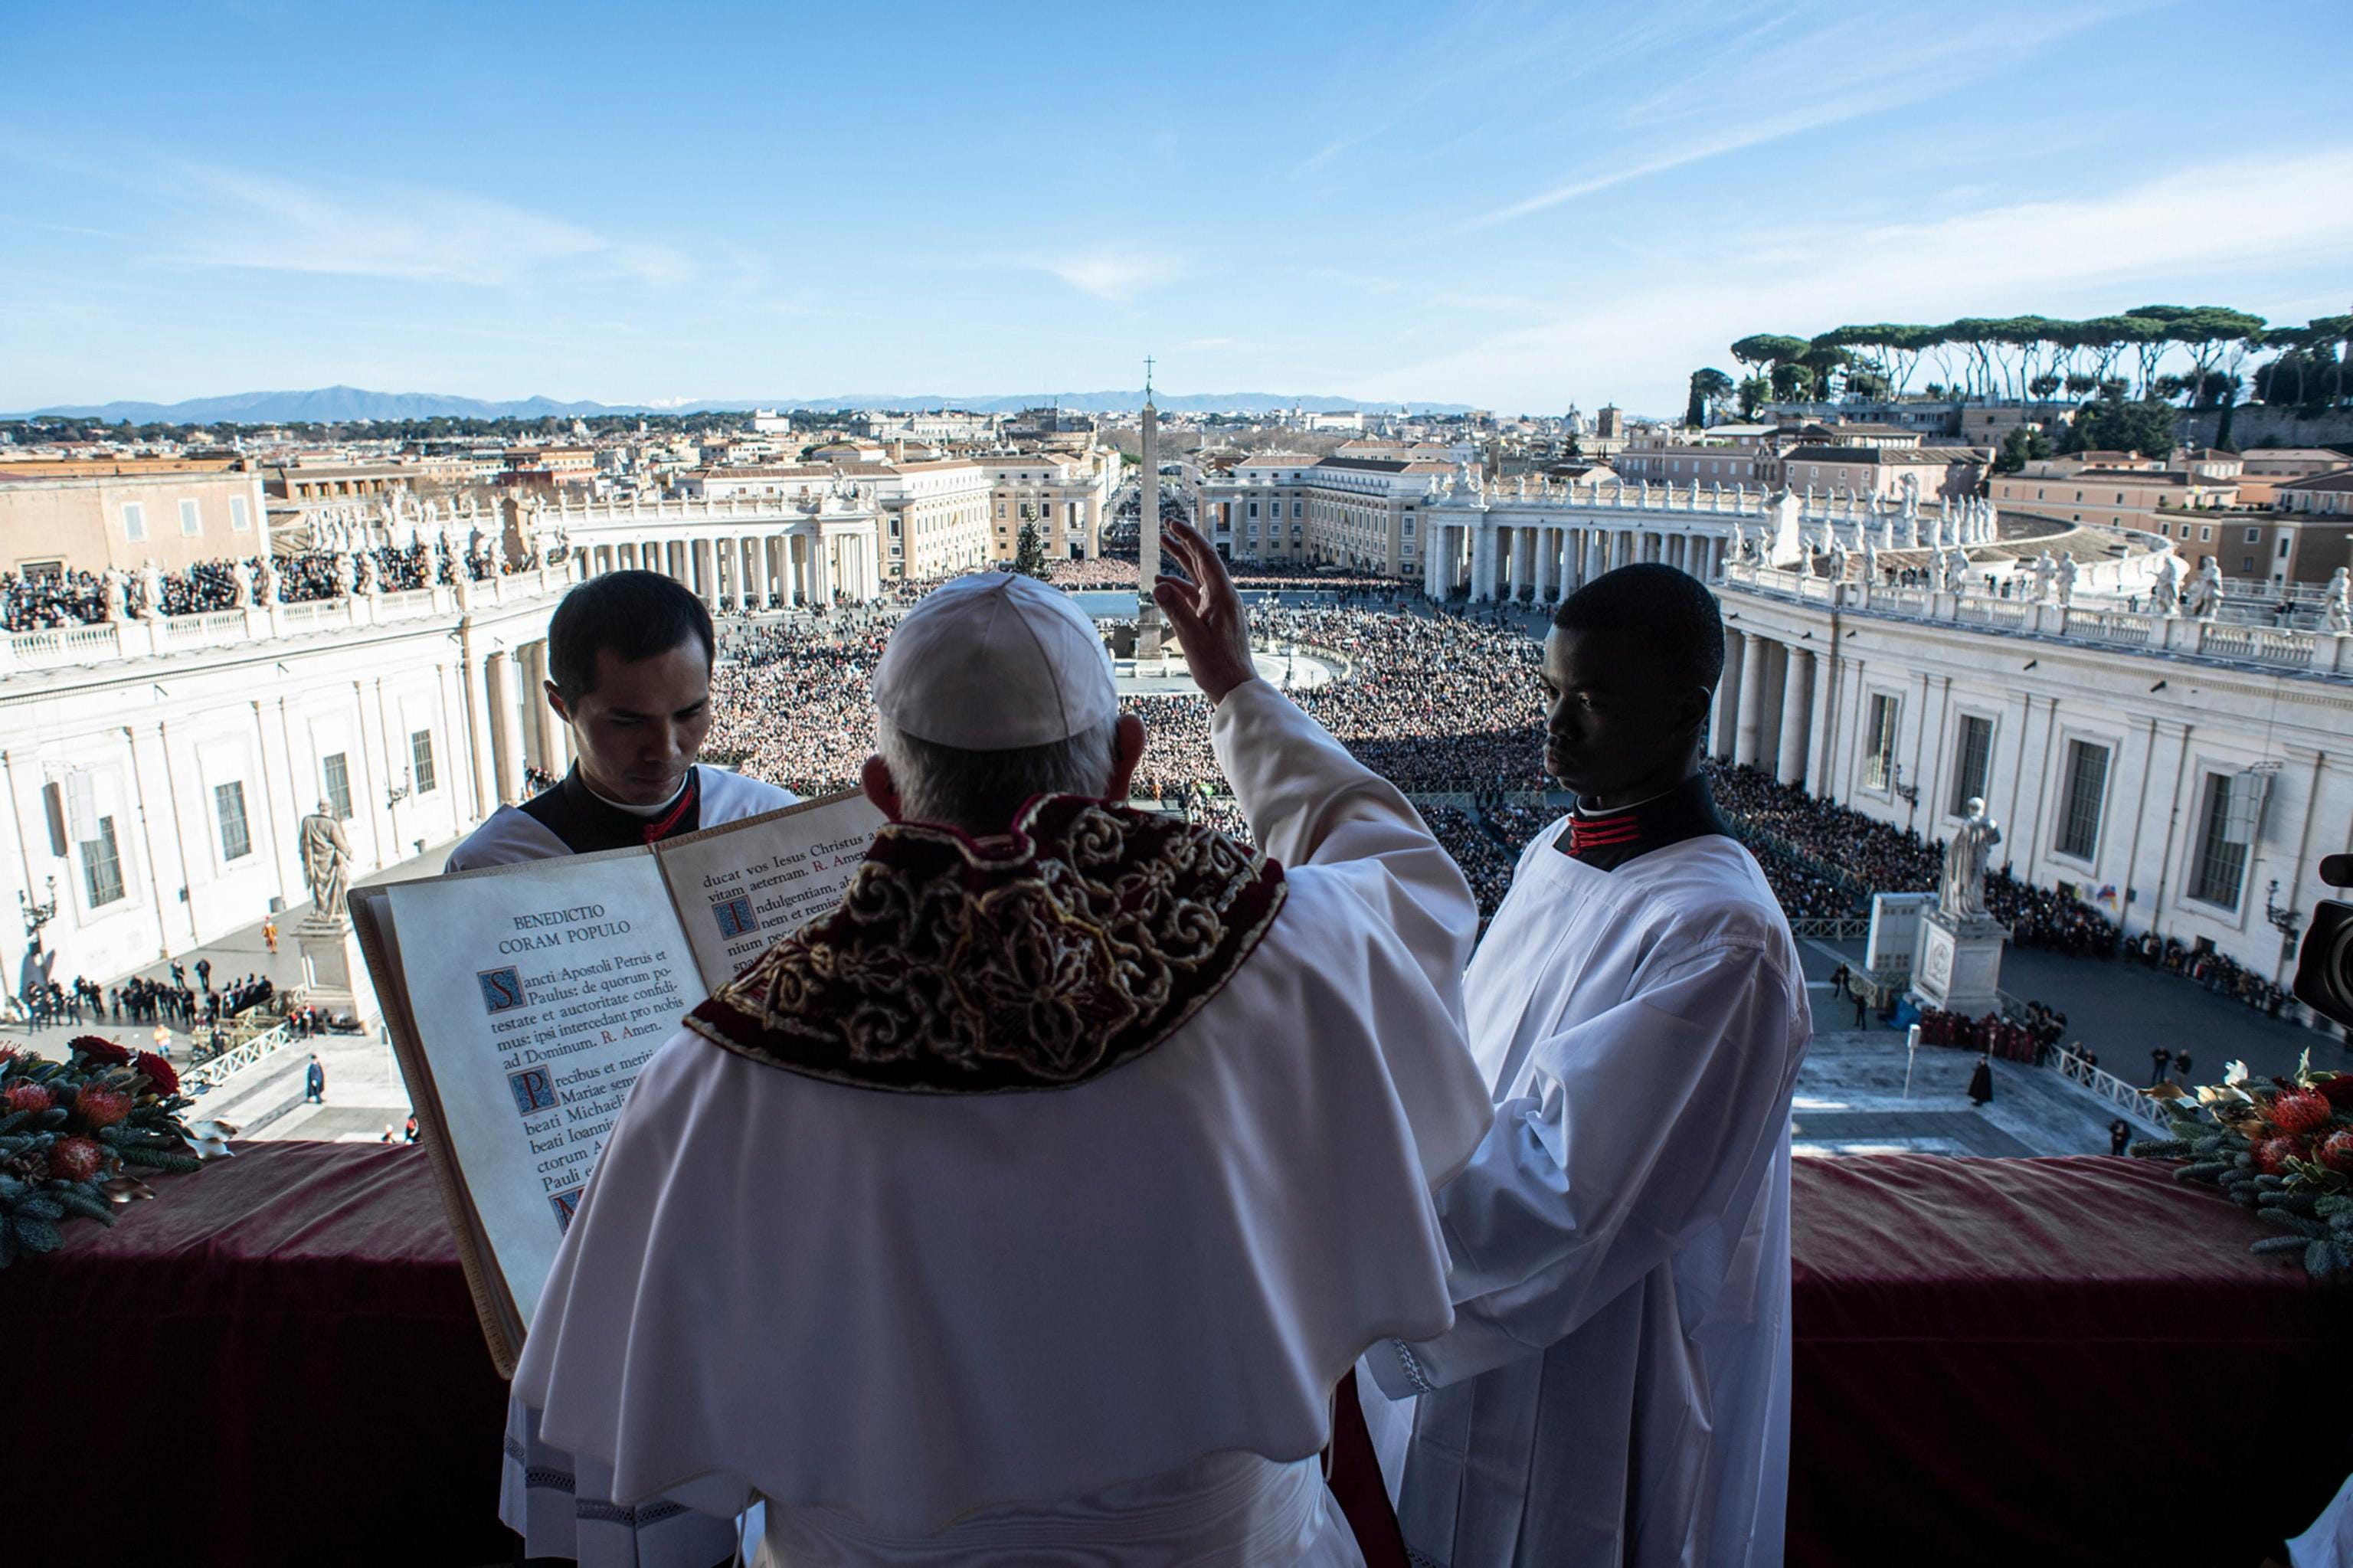 Pope Francis delivers the traditional Urbi et Orbi  Christmas Day blessing from the central balcony of St. Peter's Basilica at the Vatican on Dec. 25, 2018.